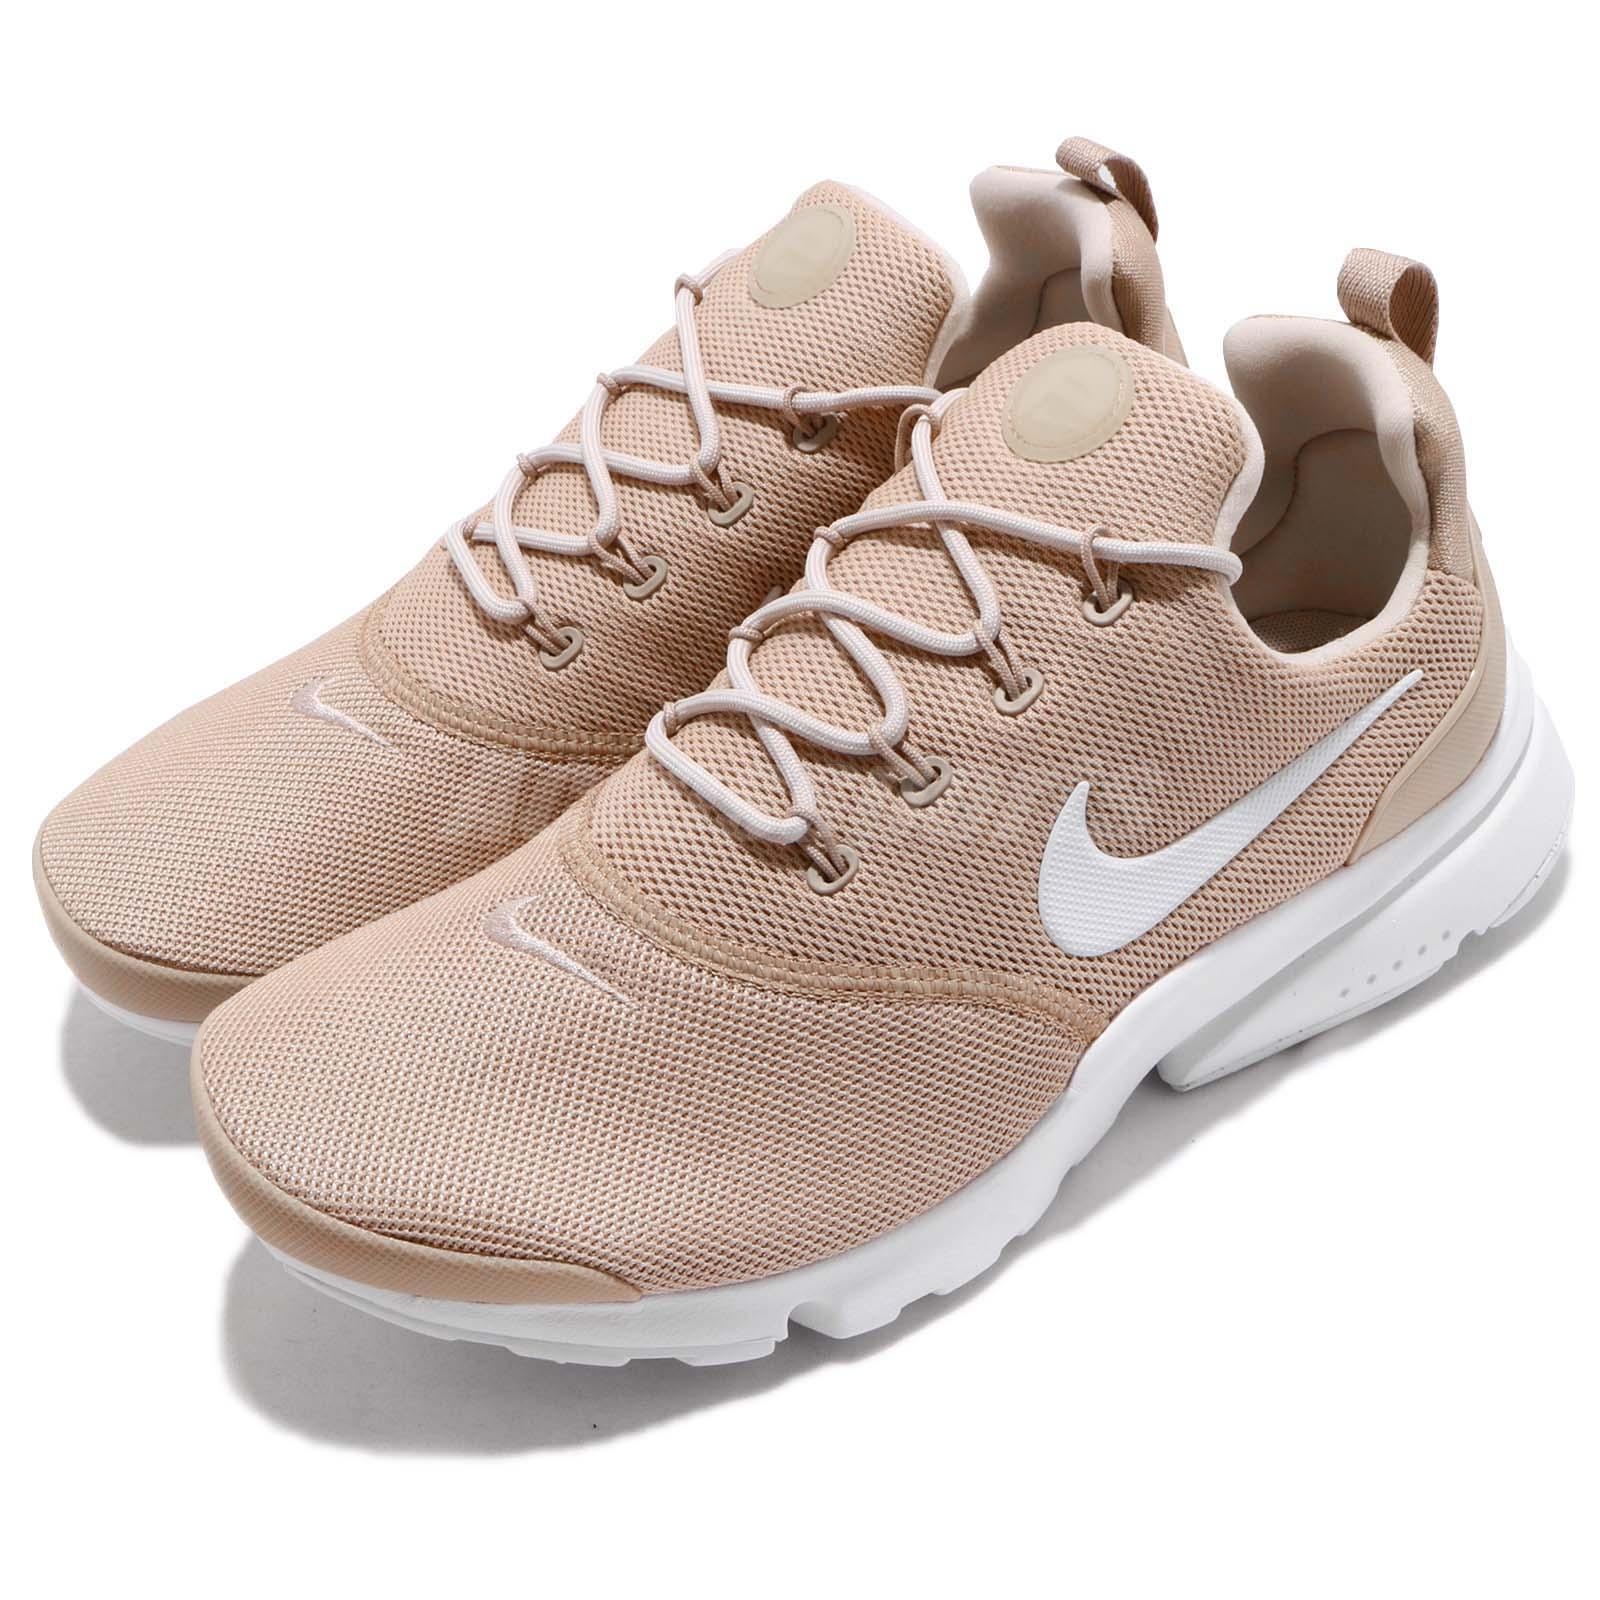 new product b8927 d59f2 Details about Nike Wmns Nike Presto Fly Desert Sand Khaki Women Running  Shoes 910569-201